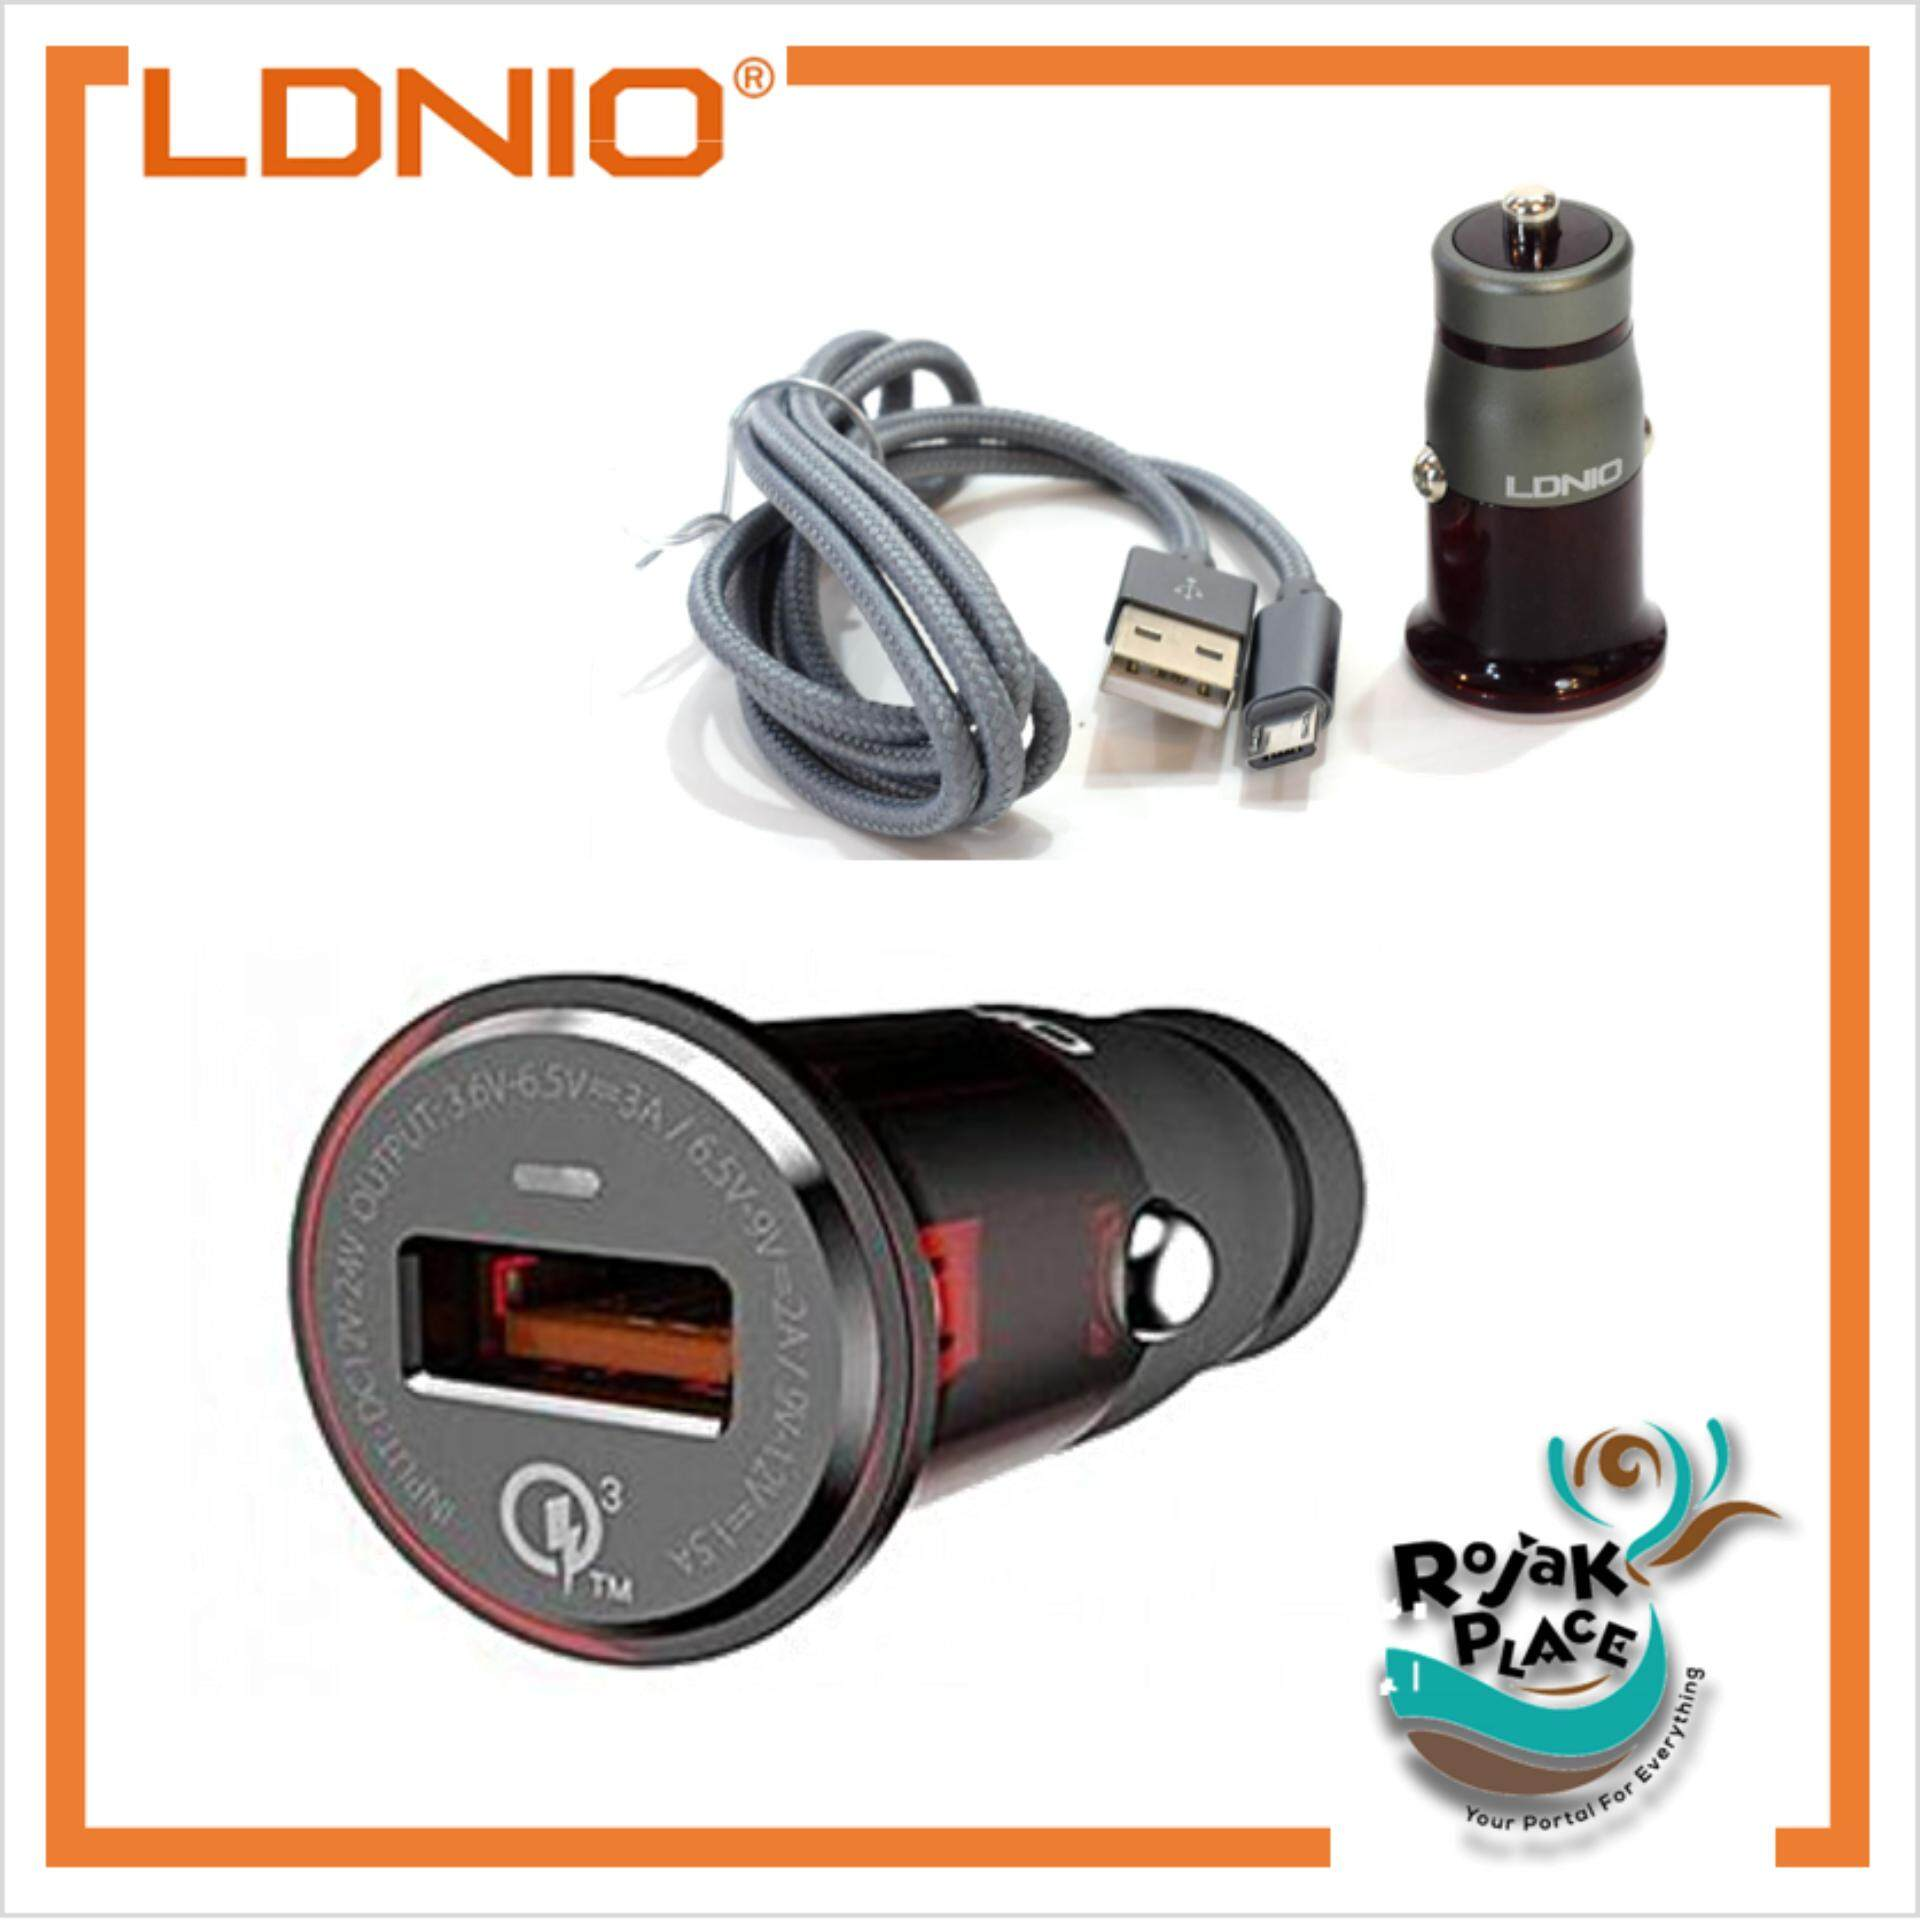 Customize Your Car Mobile Charger Batok Saver 2 Usb Ldnio C304q Qualcomm 30 Quick Charge With Cable